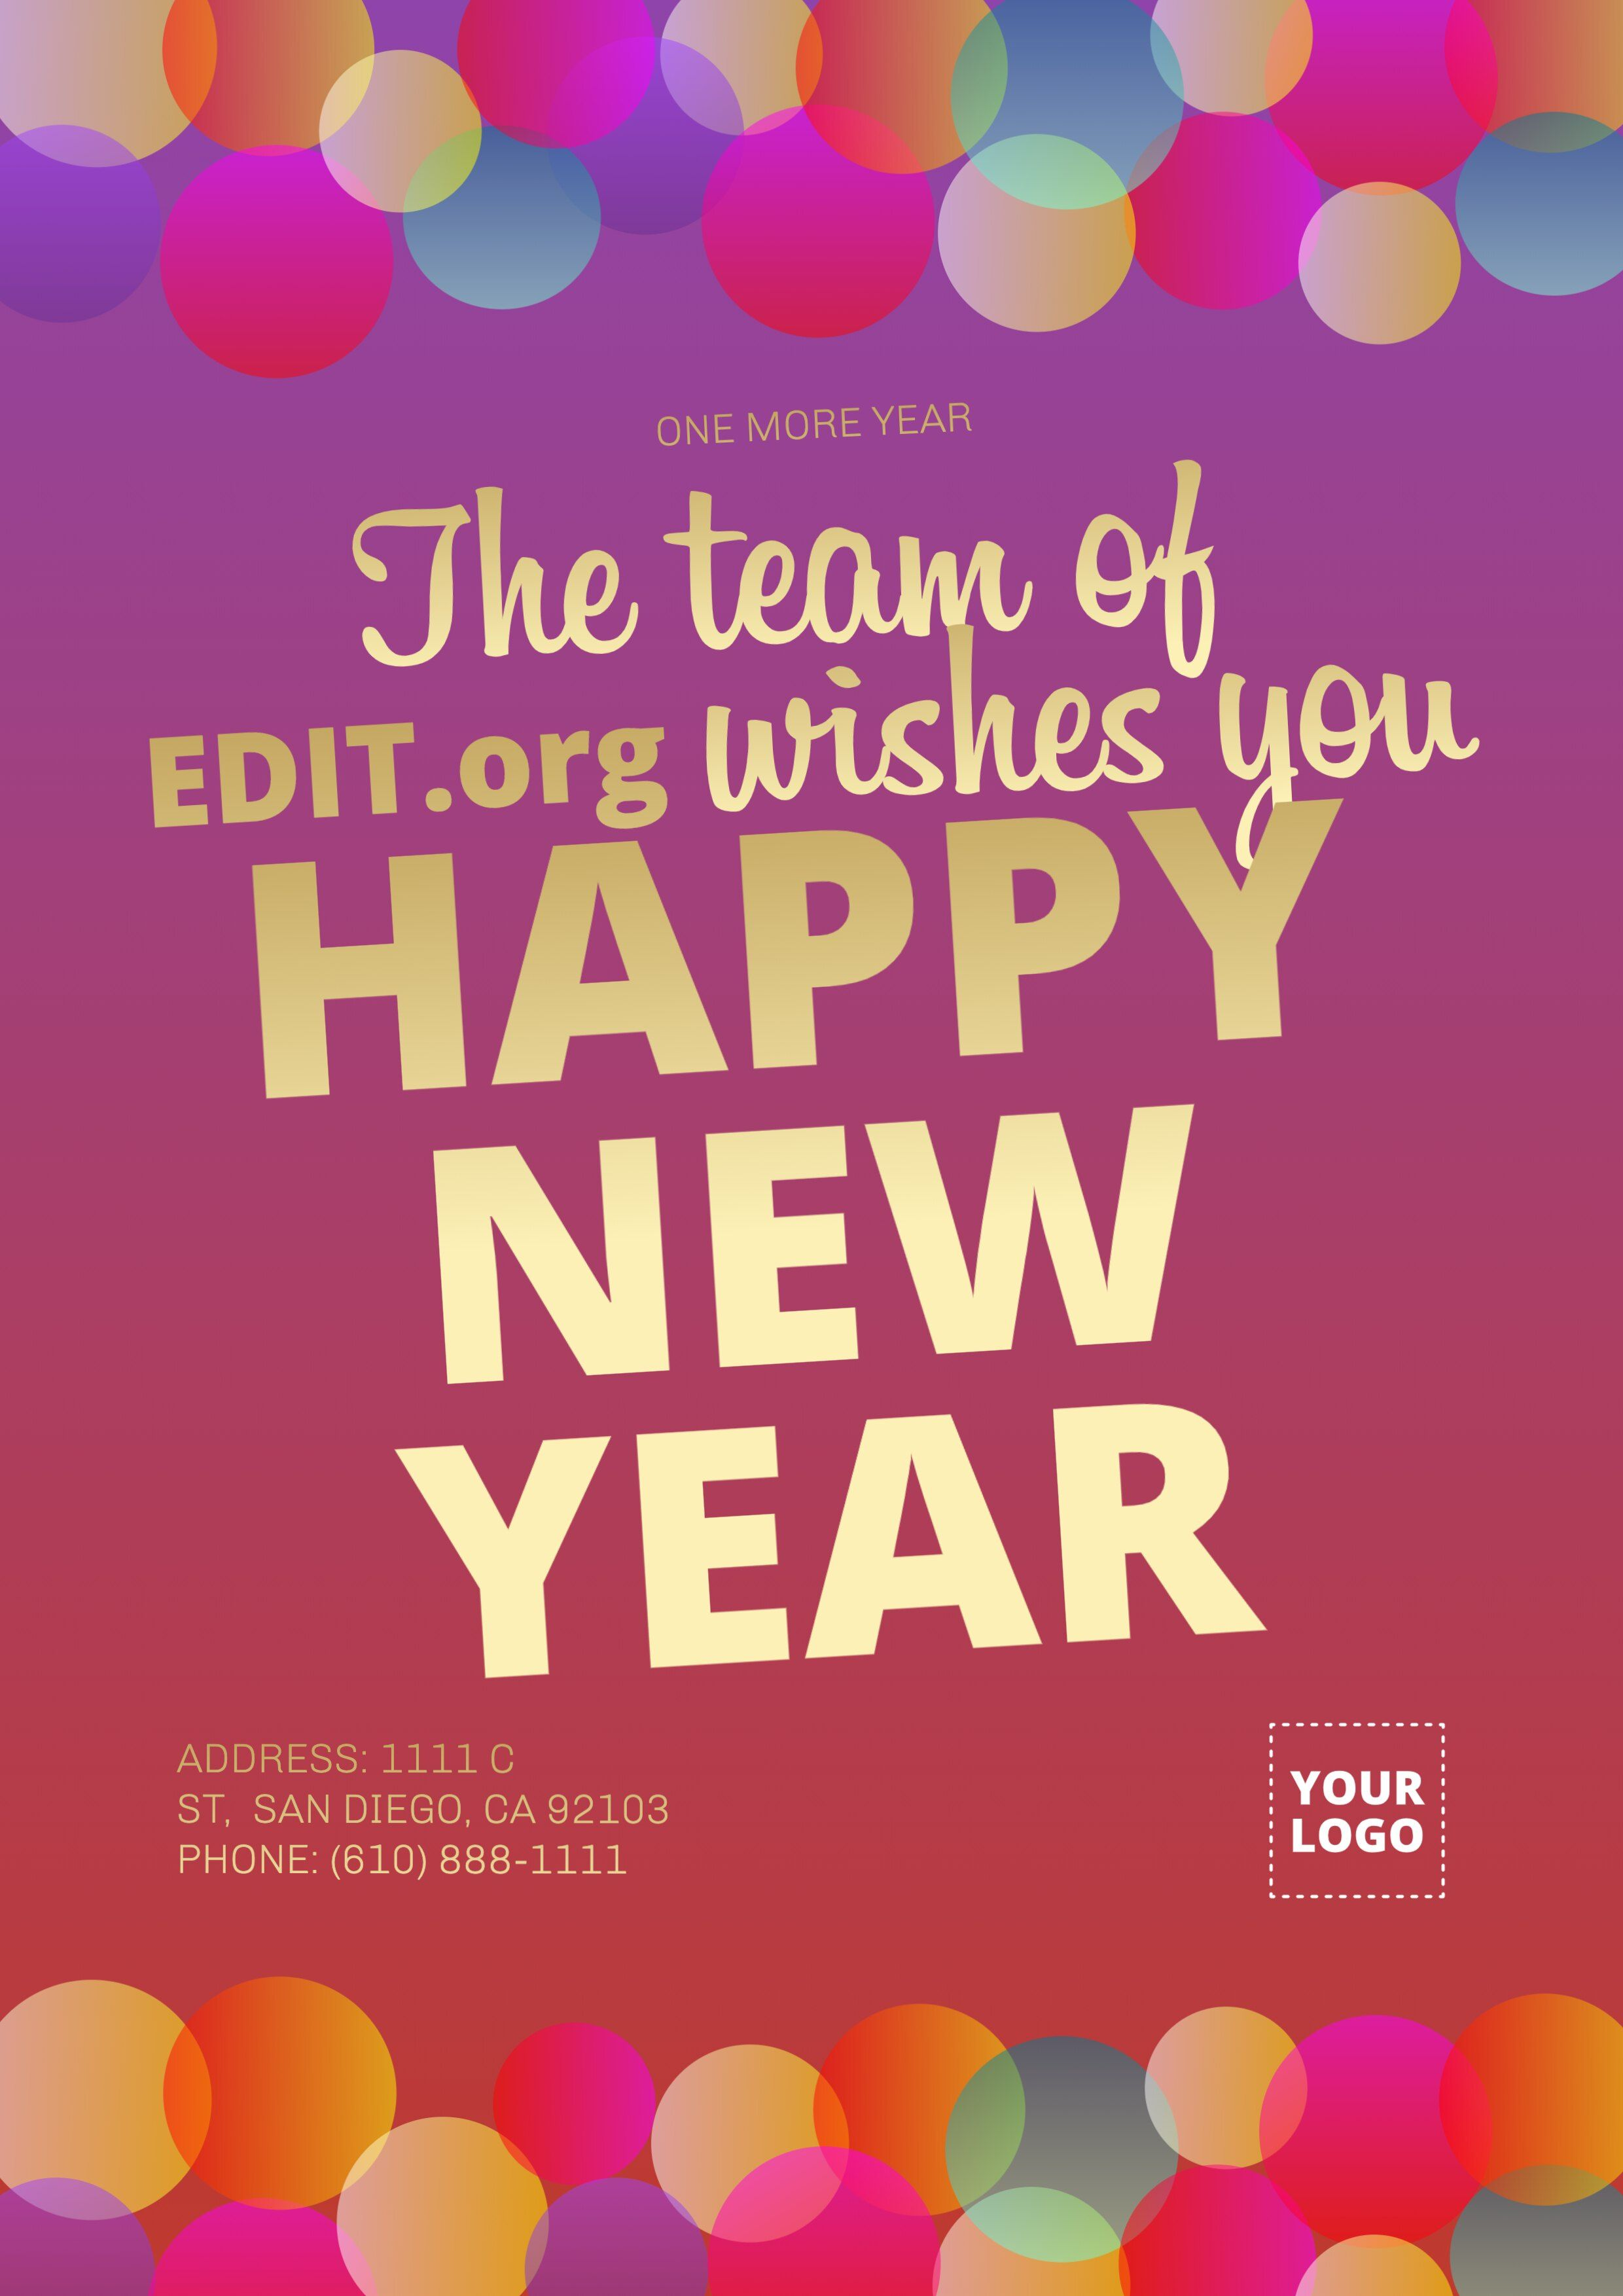 Happy New Year Poster To Edit Online In 2020 Happy New Year Christmas Campaign New Years Poster